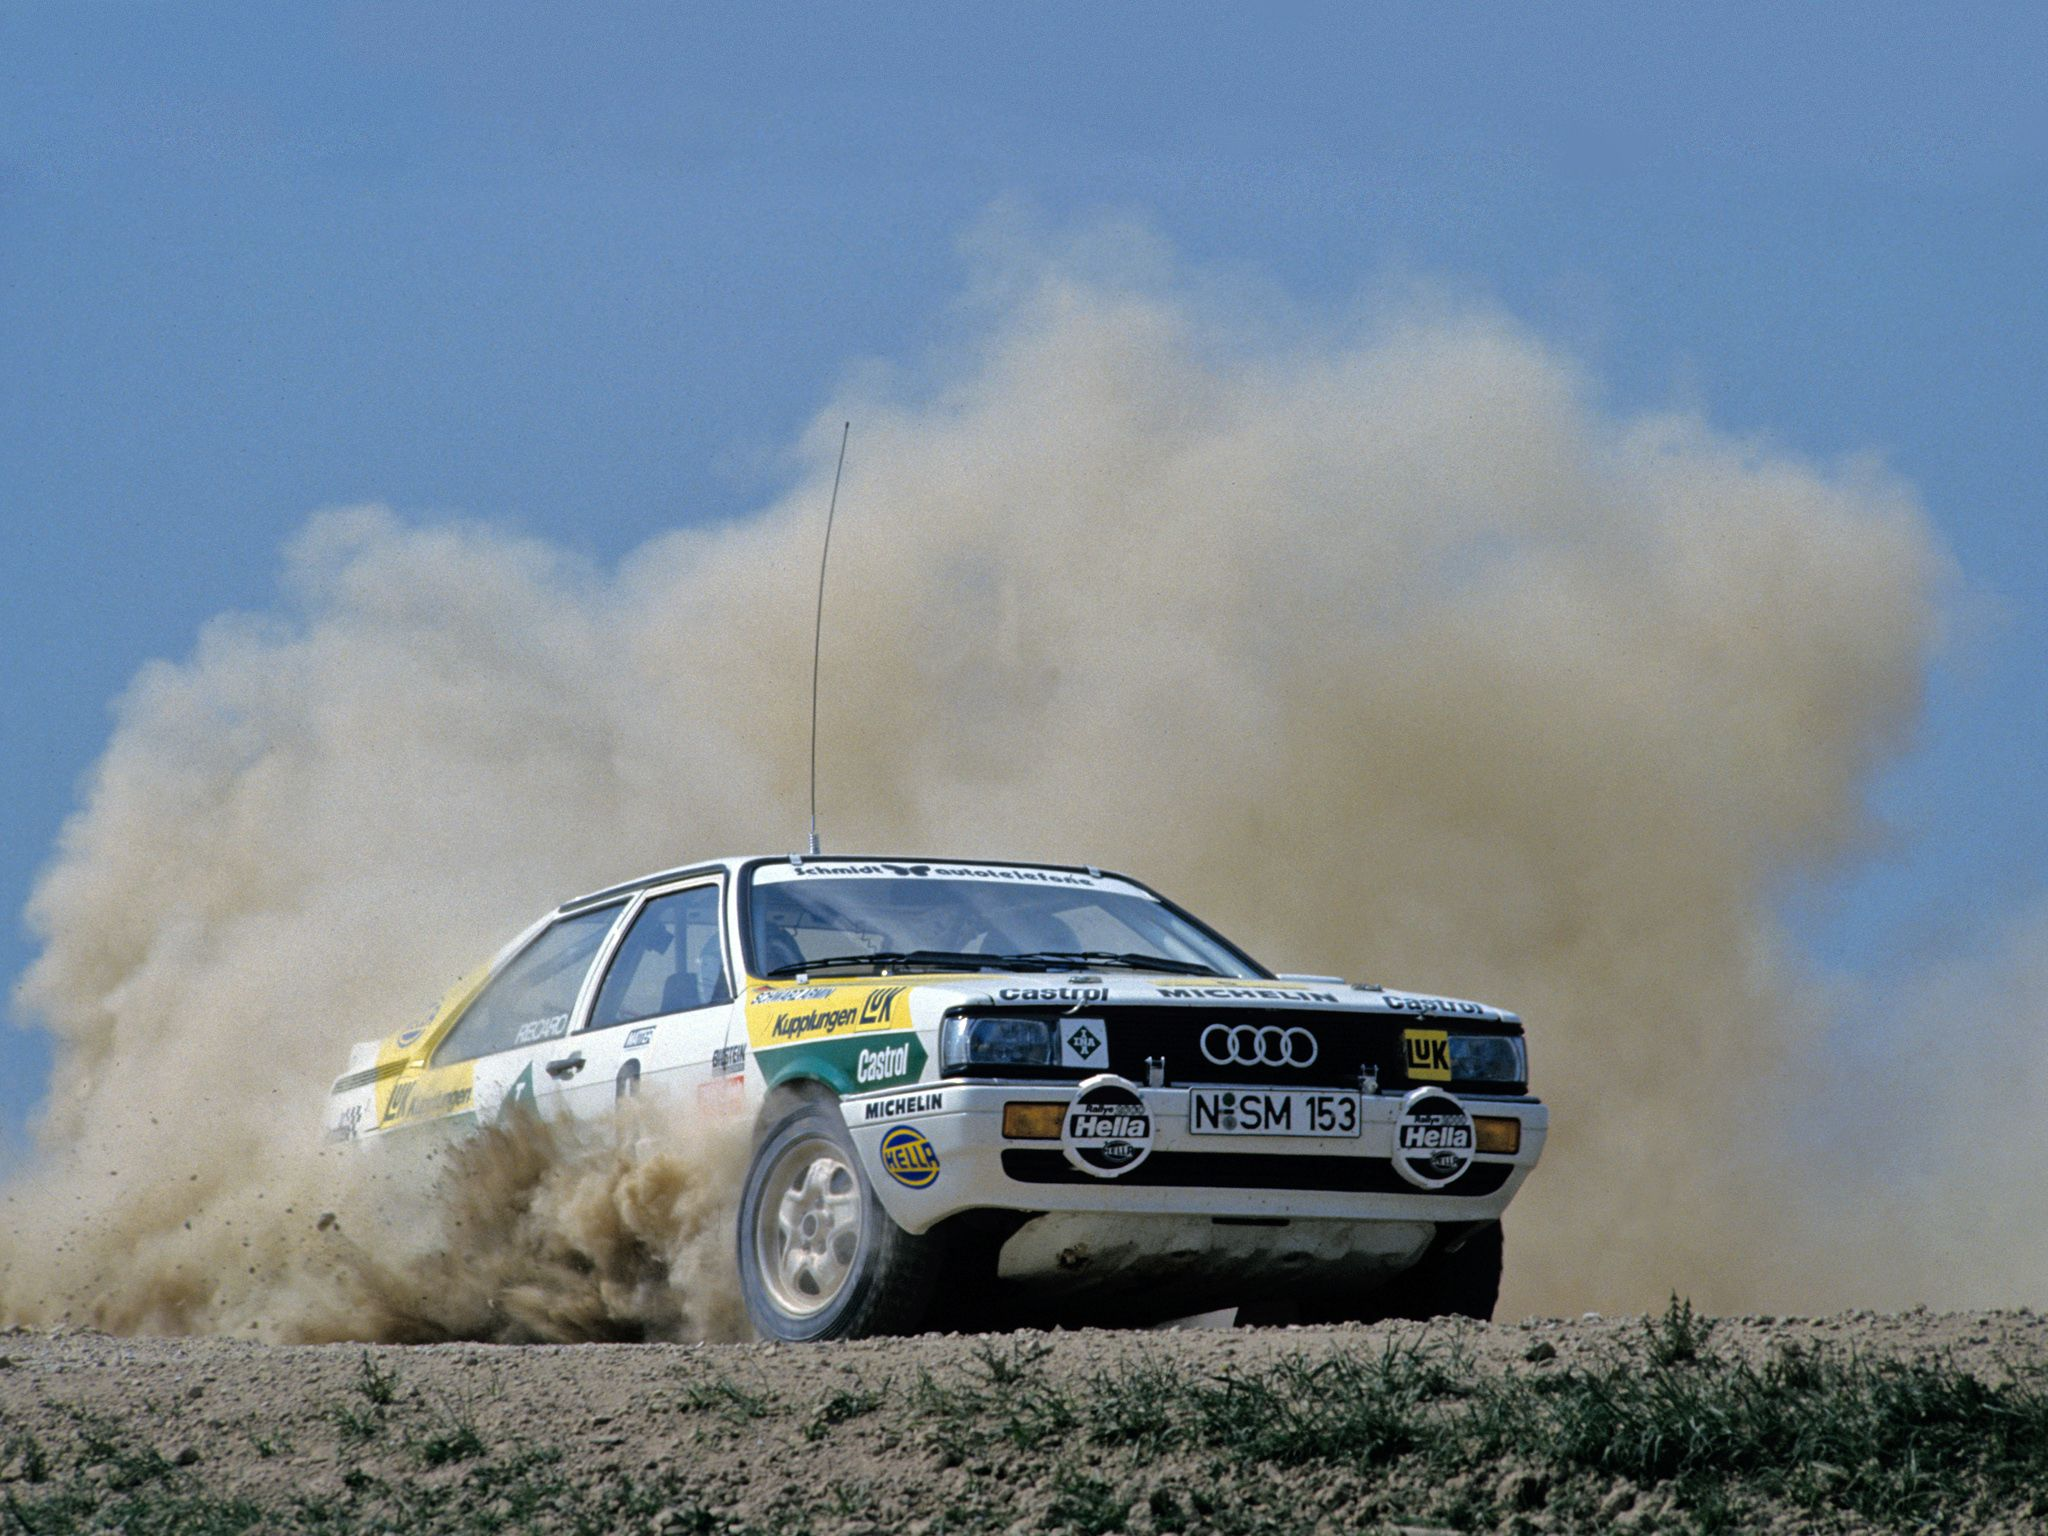 1985 88 audi coupe quattro rally car 81 85 nice rides. Black Bedroom Furniture Sets. Home Design Ideas